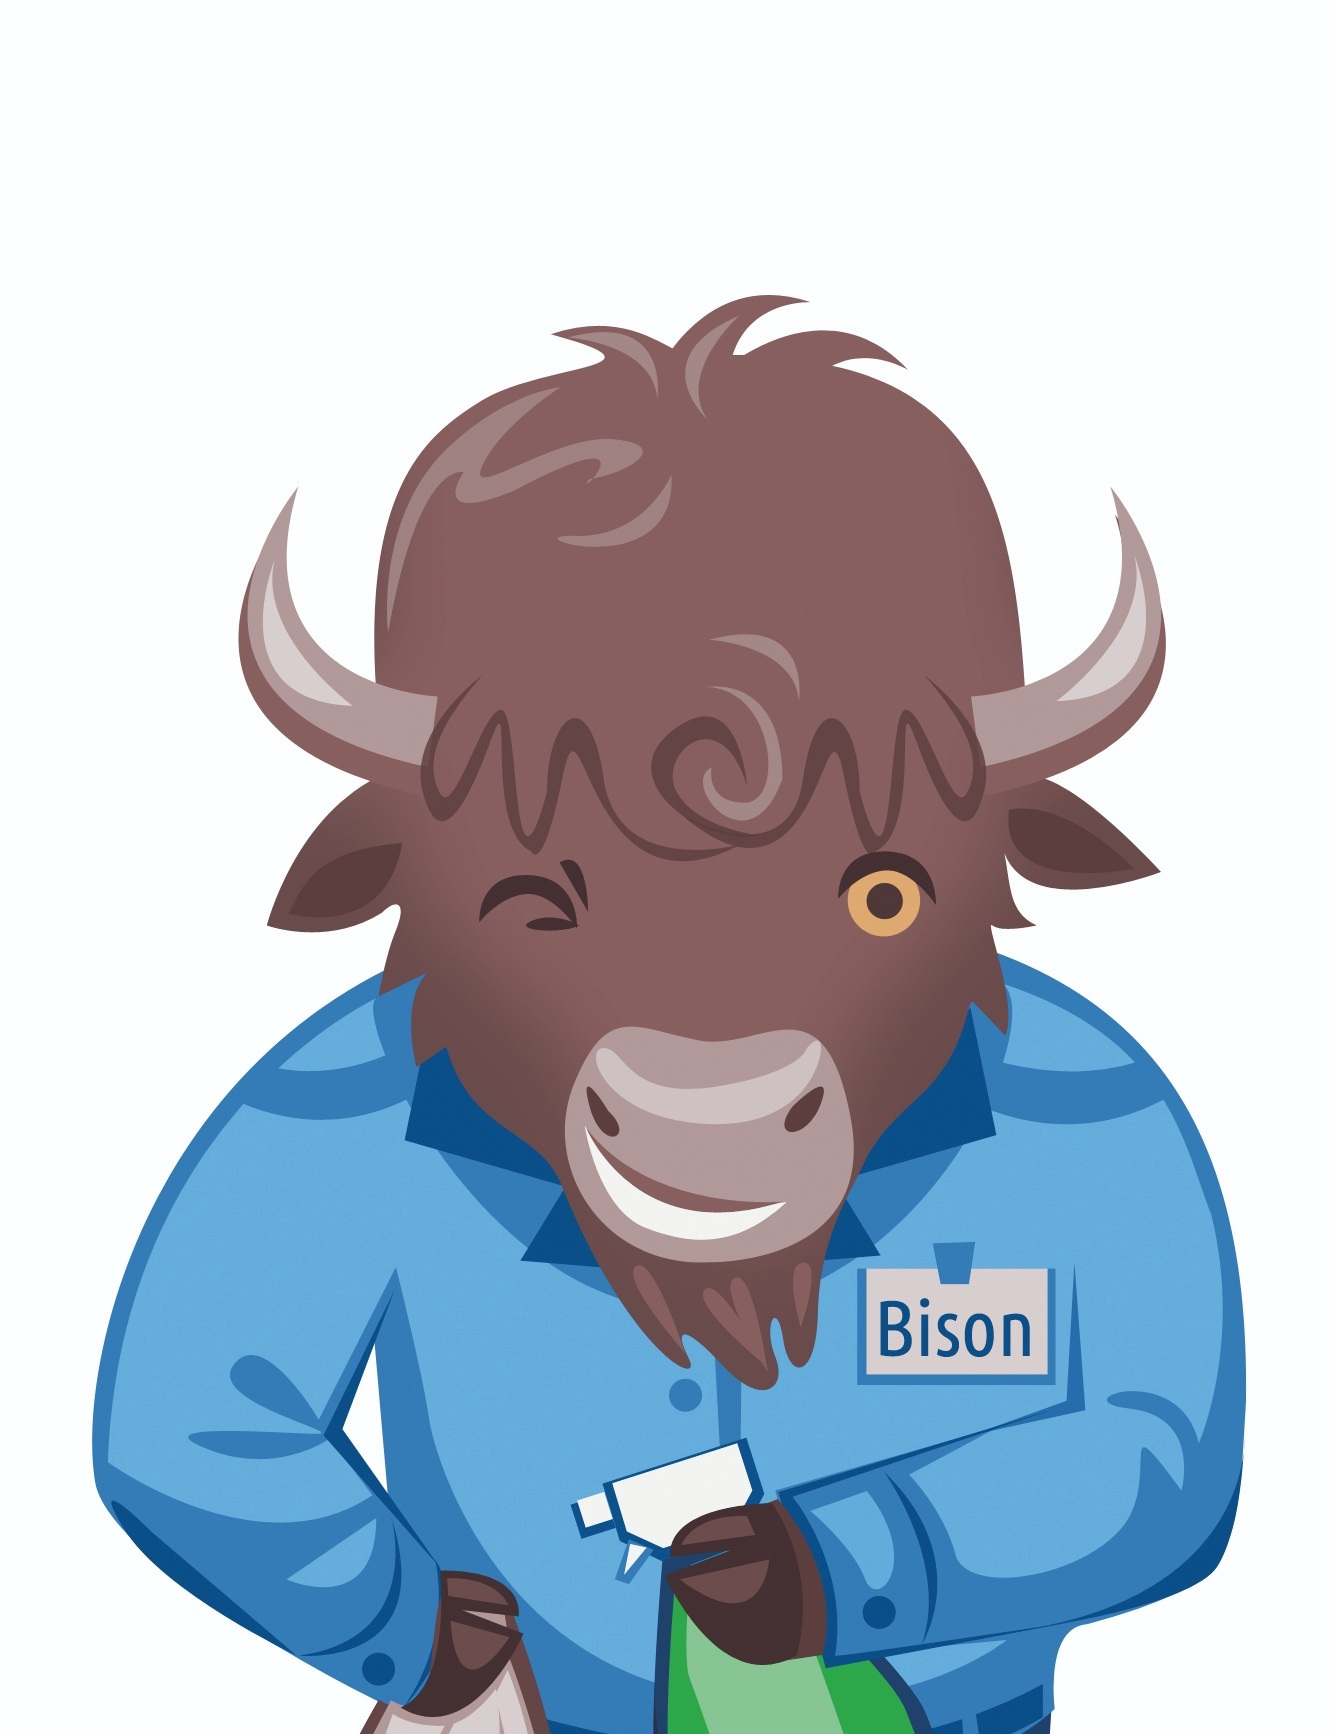 Welcome to bison - We are a Winnipeg based commercial cleaning company, providing quality service for over 25 years.At Bison Janitorial, we specialize in professional janitorial services for commercial offices, industrial warehouses, medical offices, car dealerships, schools and businesses of all sizes in and around Winnipeg.